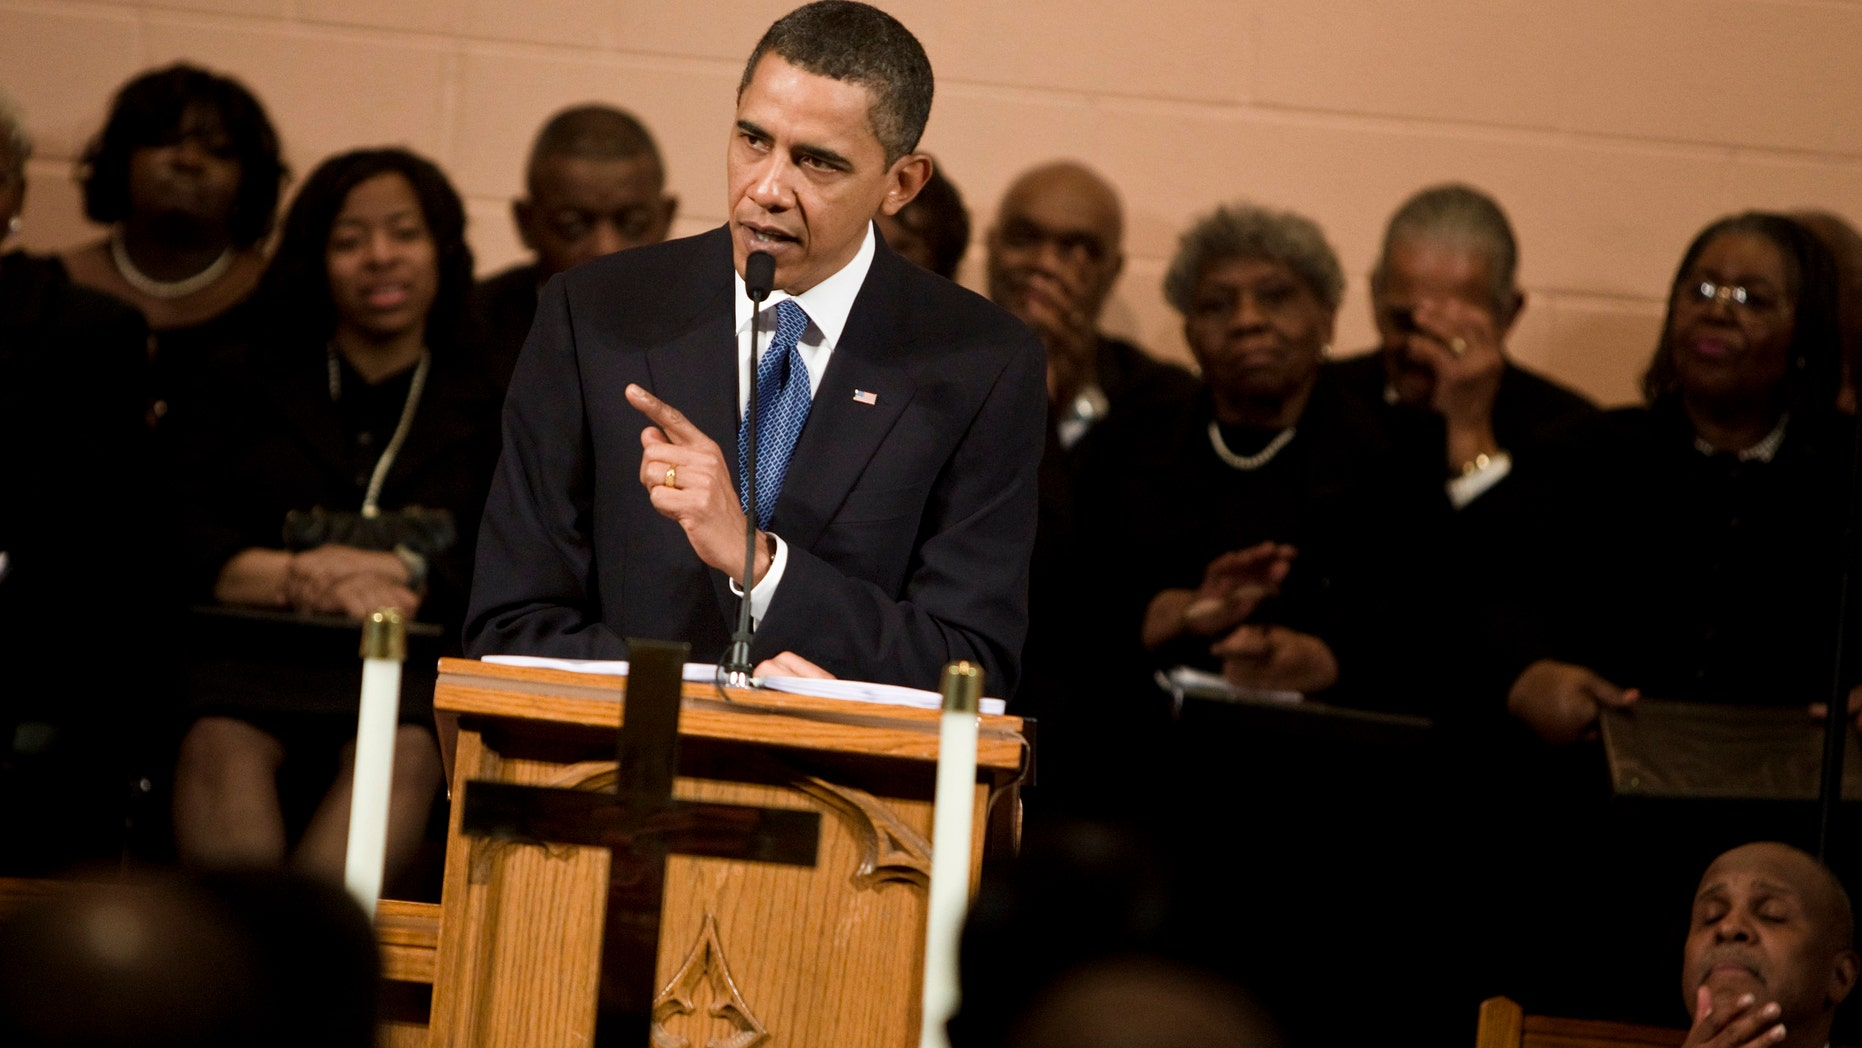 President Barack Obama speaks at Vermont Avenue Baptist Church January 17, 2010 in Washington, DC. (Photo by Brendan Smialowski/Getty Images)